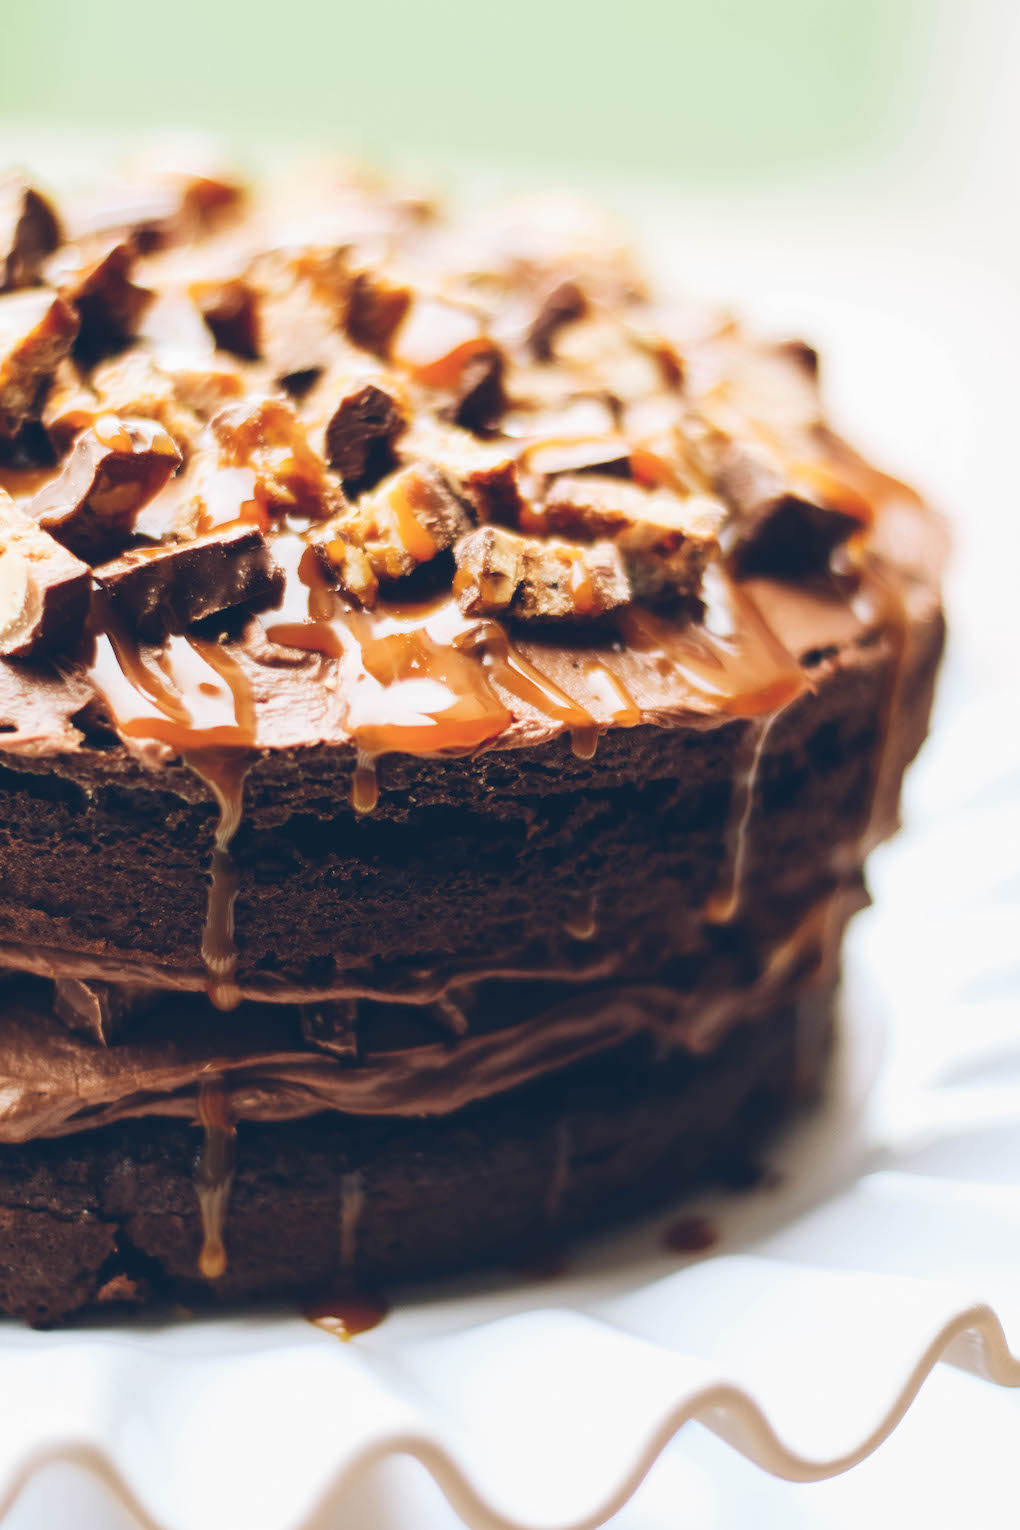 snickers-crispers-cake-16